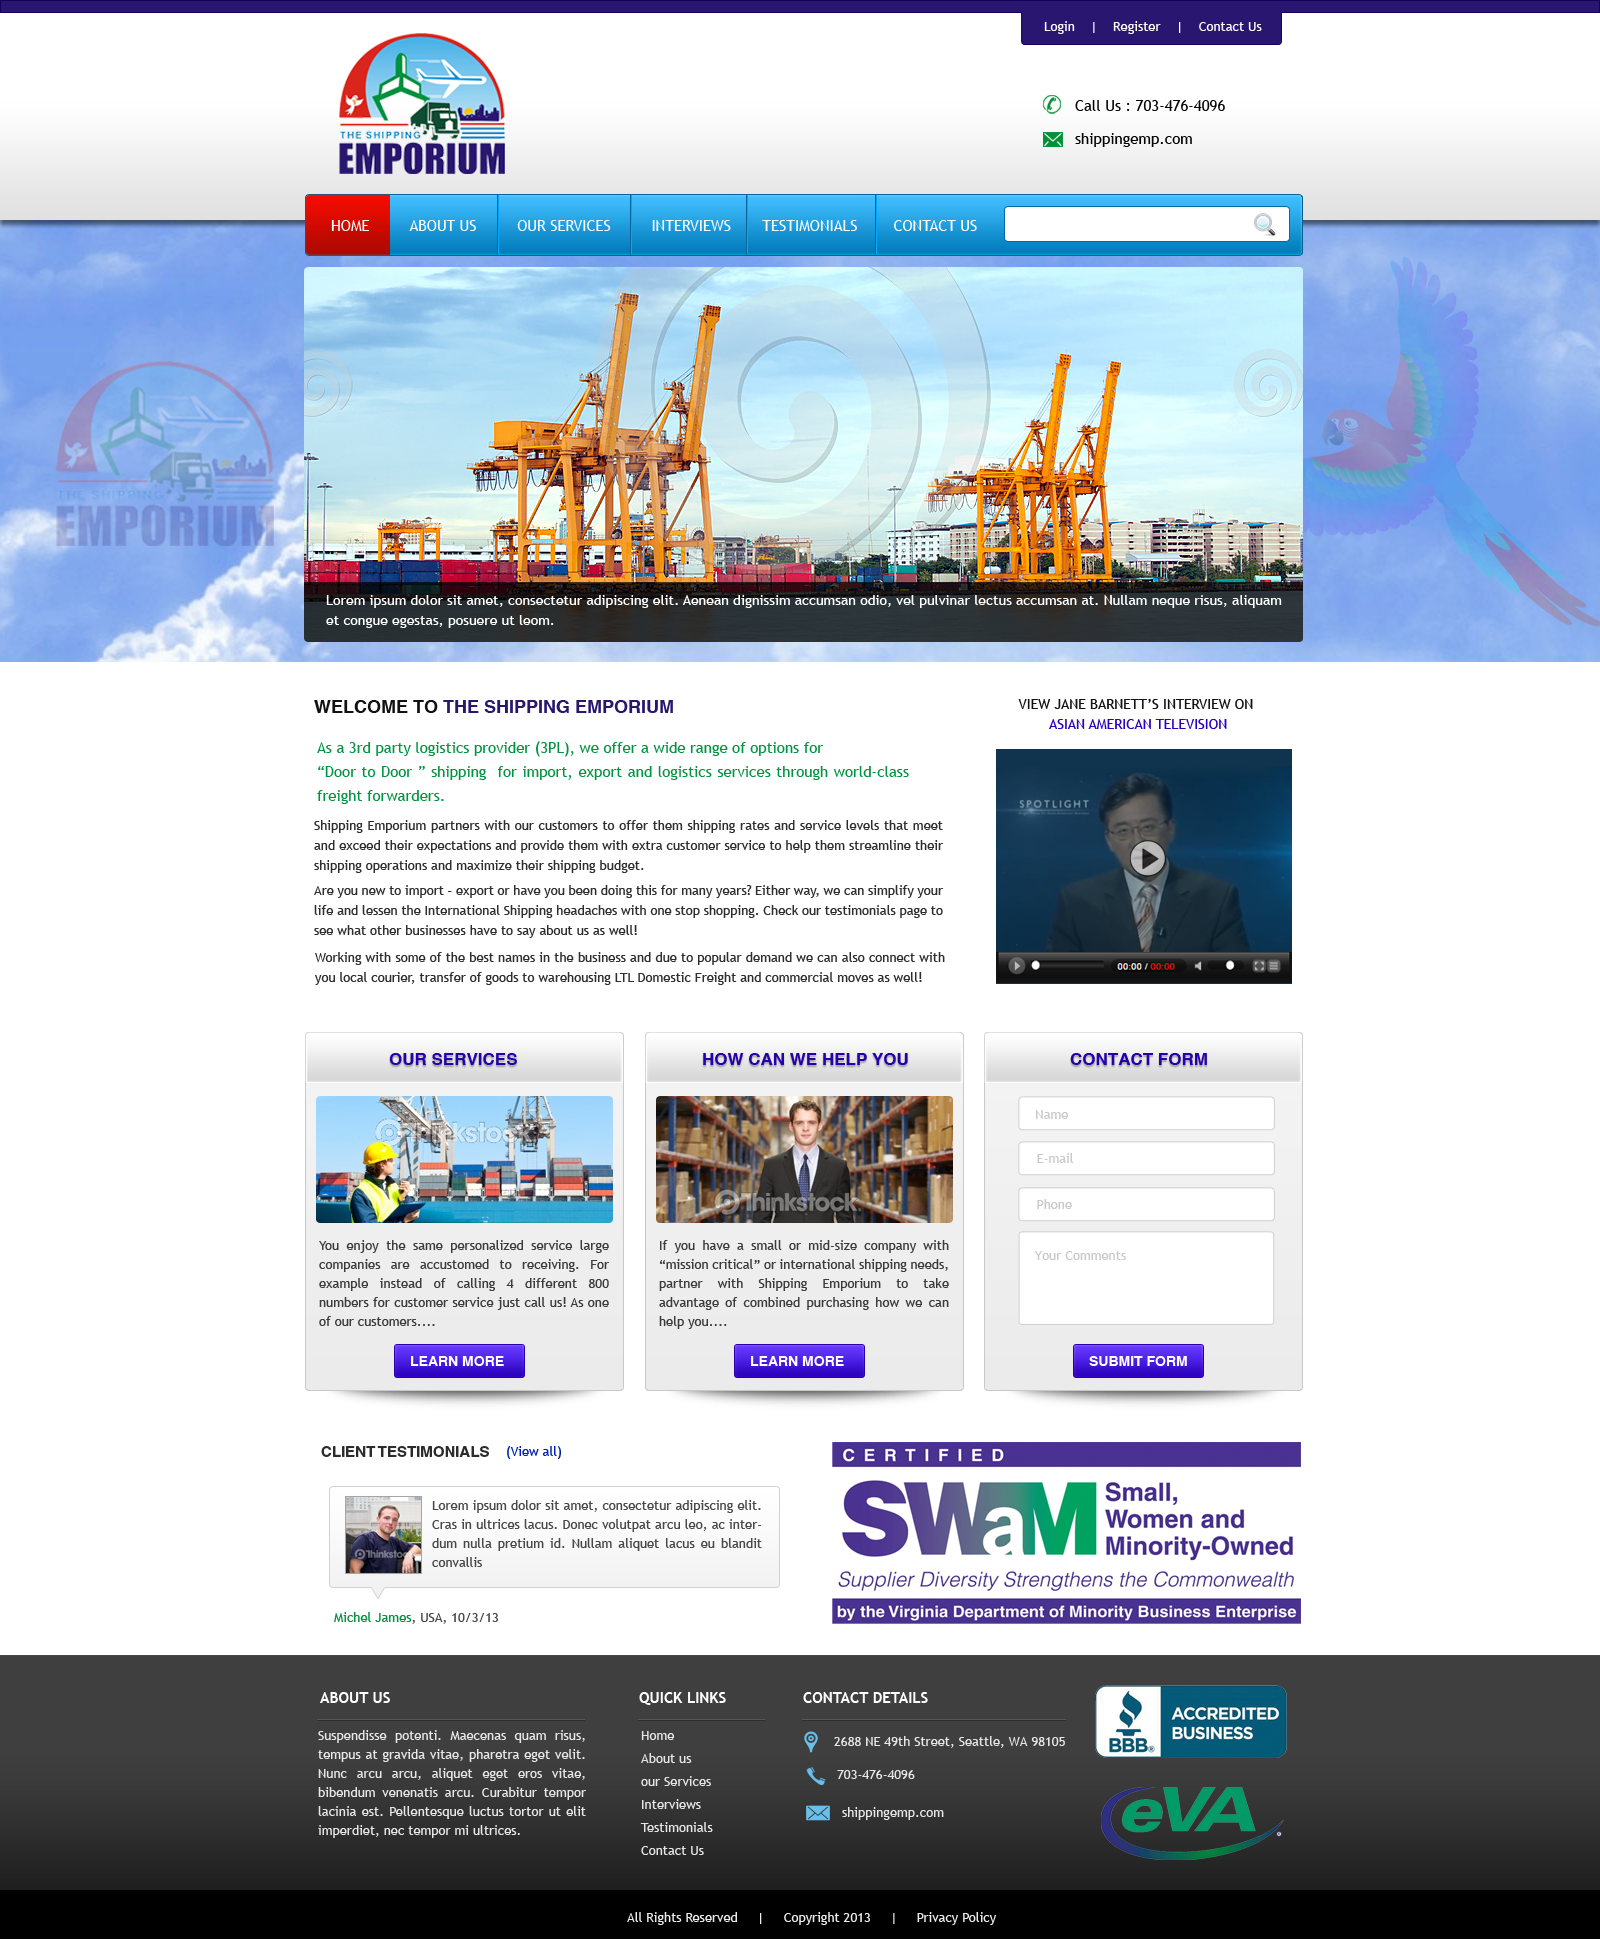 Web Page Design by Vishwa Km - Entry No. 2 in the Web Page Design Contest Artistic Web Page Design for The Shipping Emporium Website.